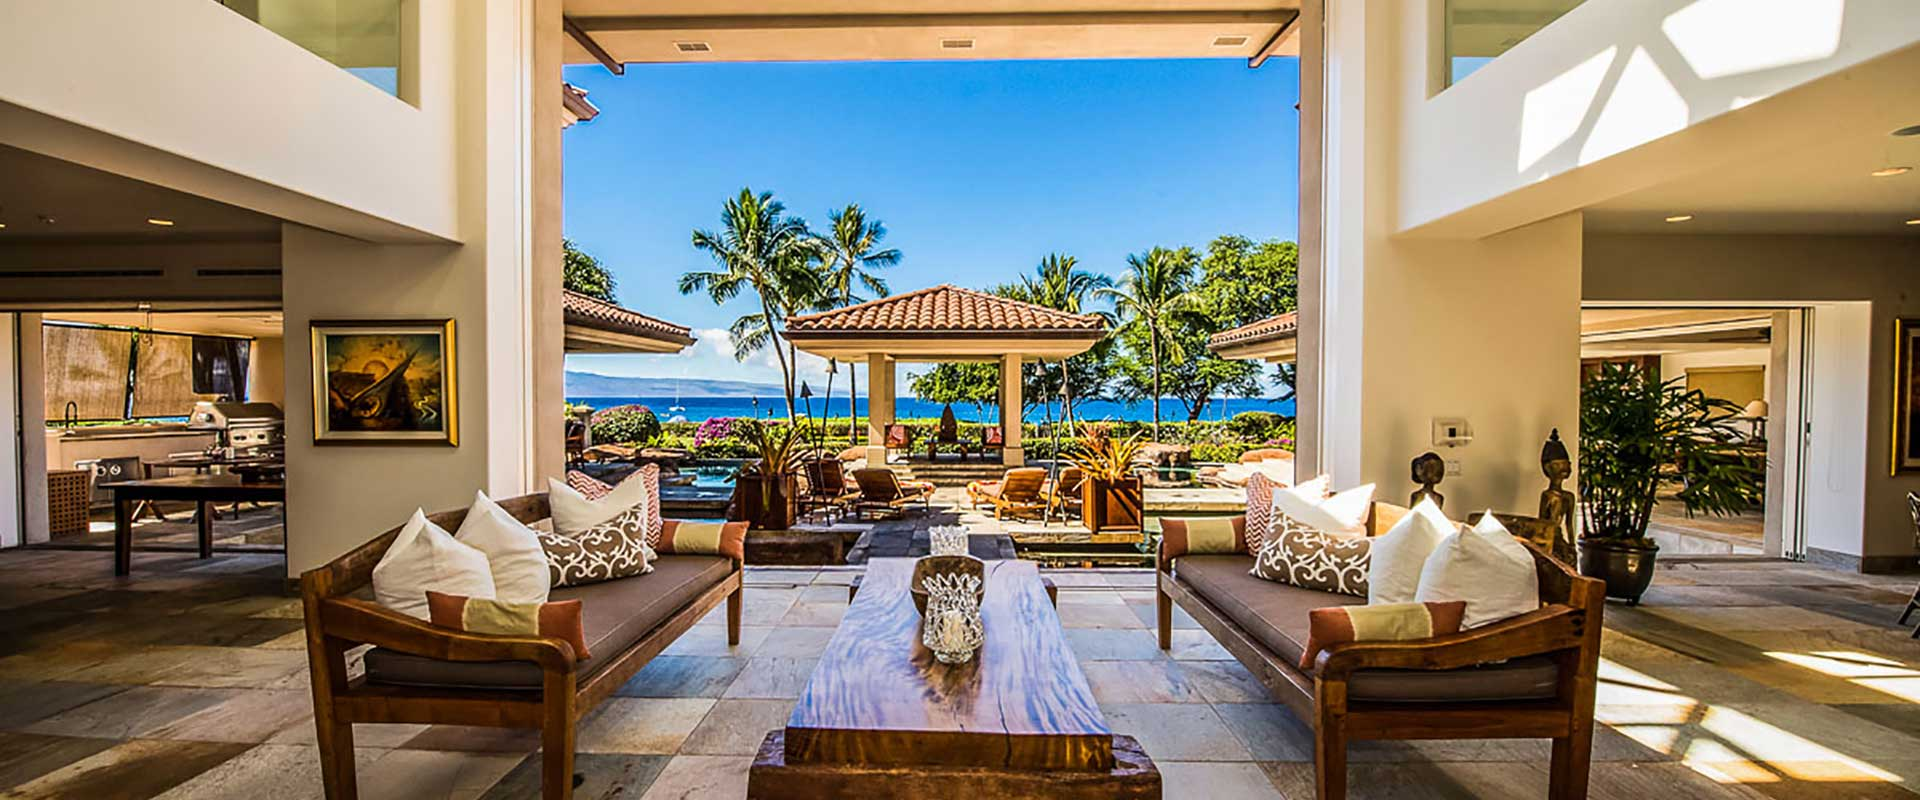 Kaanapali Maui Luxury Home Created By Long Associcates AIA